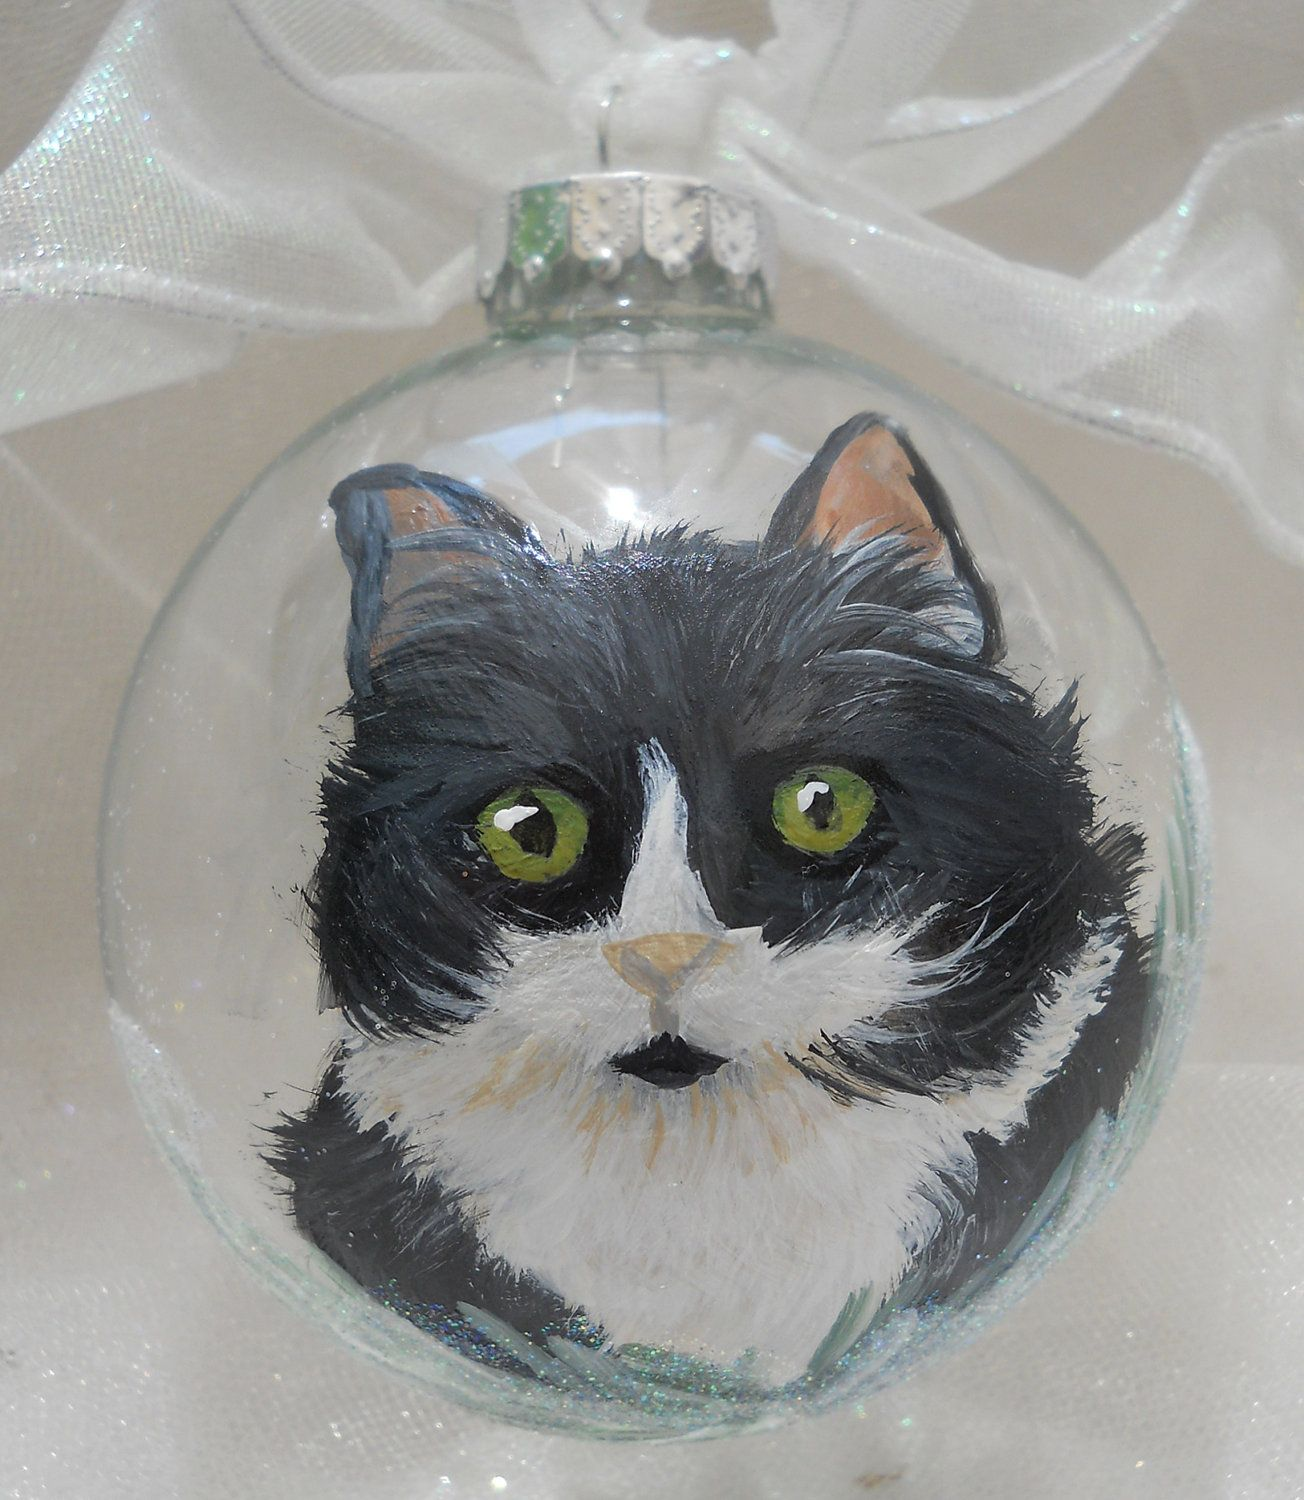 Christmas Tree Made Of Black Cats: Black & White Cat Hand Painted Cat Ornament By